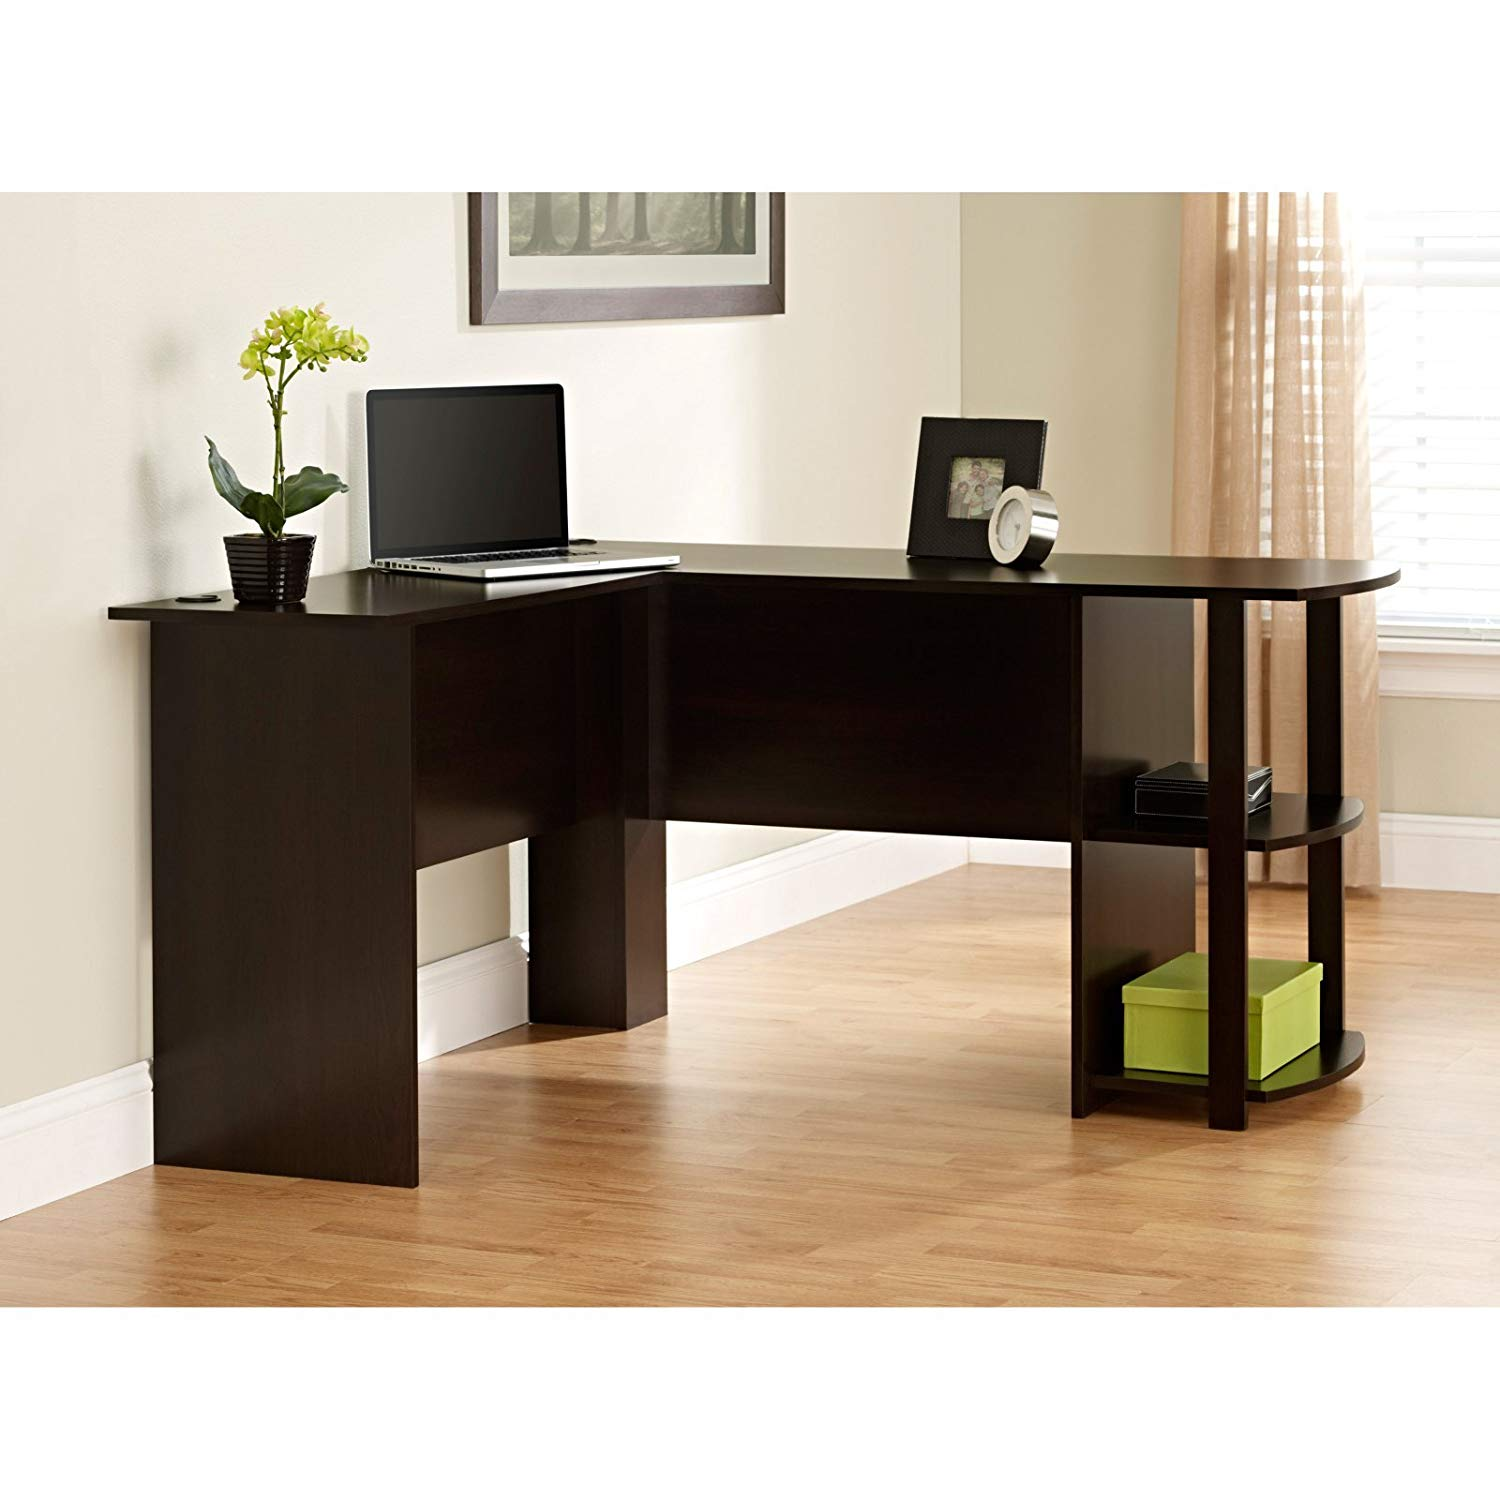 L-Shaped Office Desk in Dark Russet Cherry, Side Storage, Wood Composite, 2 Open Bookshelves, Built-in Grommets, Home, Top Surface, Bundle with Our Expert Guide with Tips for Home Arrangement